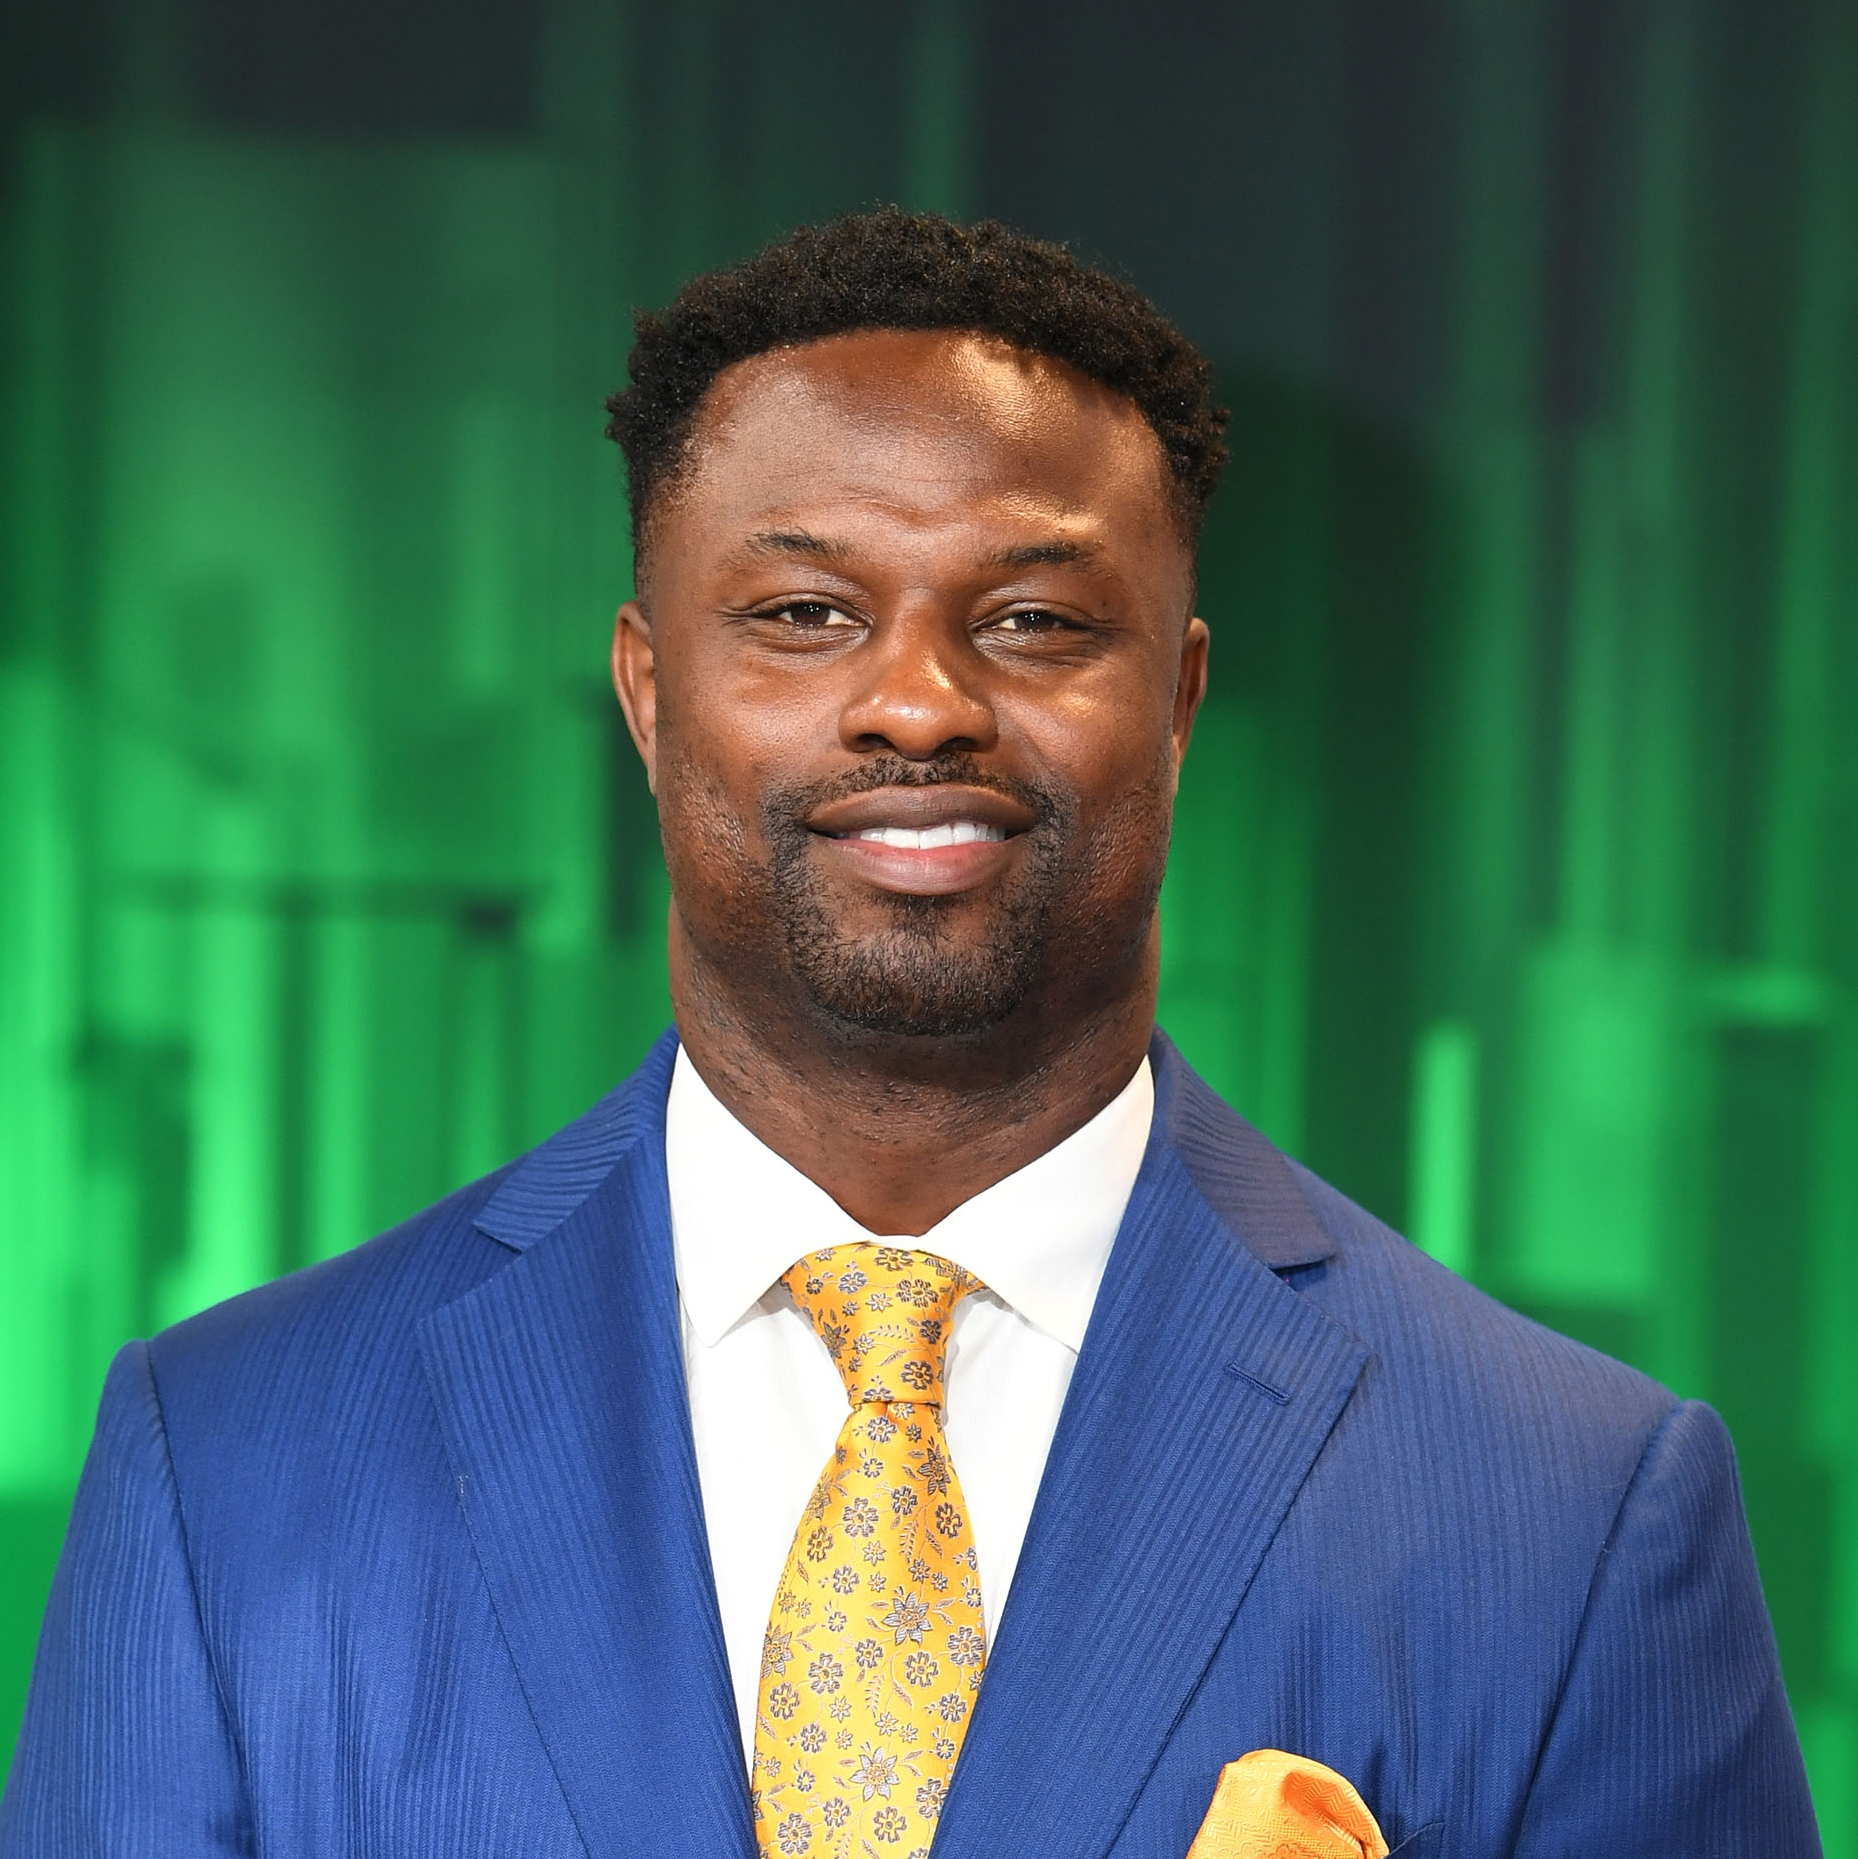 "Bart Scott joined SNY in 2018 as a television analyst for the network's New York Jets studio shows. Scott appears on a SNY's exclusive Jets shows, including, ""Jets Pre-Game Live"" and ""Jets Post-Game Live."" He also regularly appears on SNY's ""GEICO SportsNite.""  Scott is also currently a co-host on ESPN New York 98.7 FM, sports talk radio and regularly contributes to ESPN's television's daily morning shows Get Up and First Take. Prior to ESPN, Scott was a co-host on WFAN sports talk radio and was a studio analyst for the CBS television network's NFL pregame show, ""The NFL Today,"" from 2014-16. In addition to ""The NFL Today,"" Scott contributed to ""Inside the NFL"" on Showtime.  Scott was a linebacker in the National Football League (NFL) for eleven seasons - Baltimore Ravens (2002-08) and the New York Jets (2009-12). In 2006, he was a Pro Bowl selection and earned All-Pro honors.  Scott graduated from Southern Illinois University and is a member of the school's Hall of Fame."